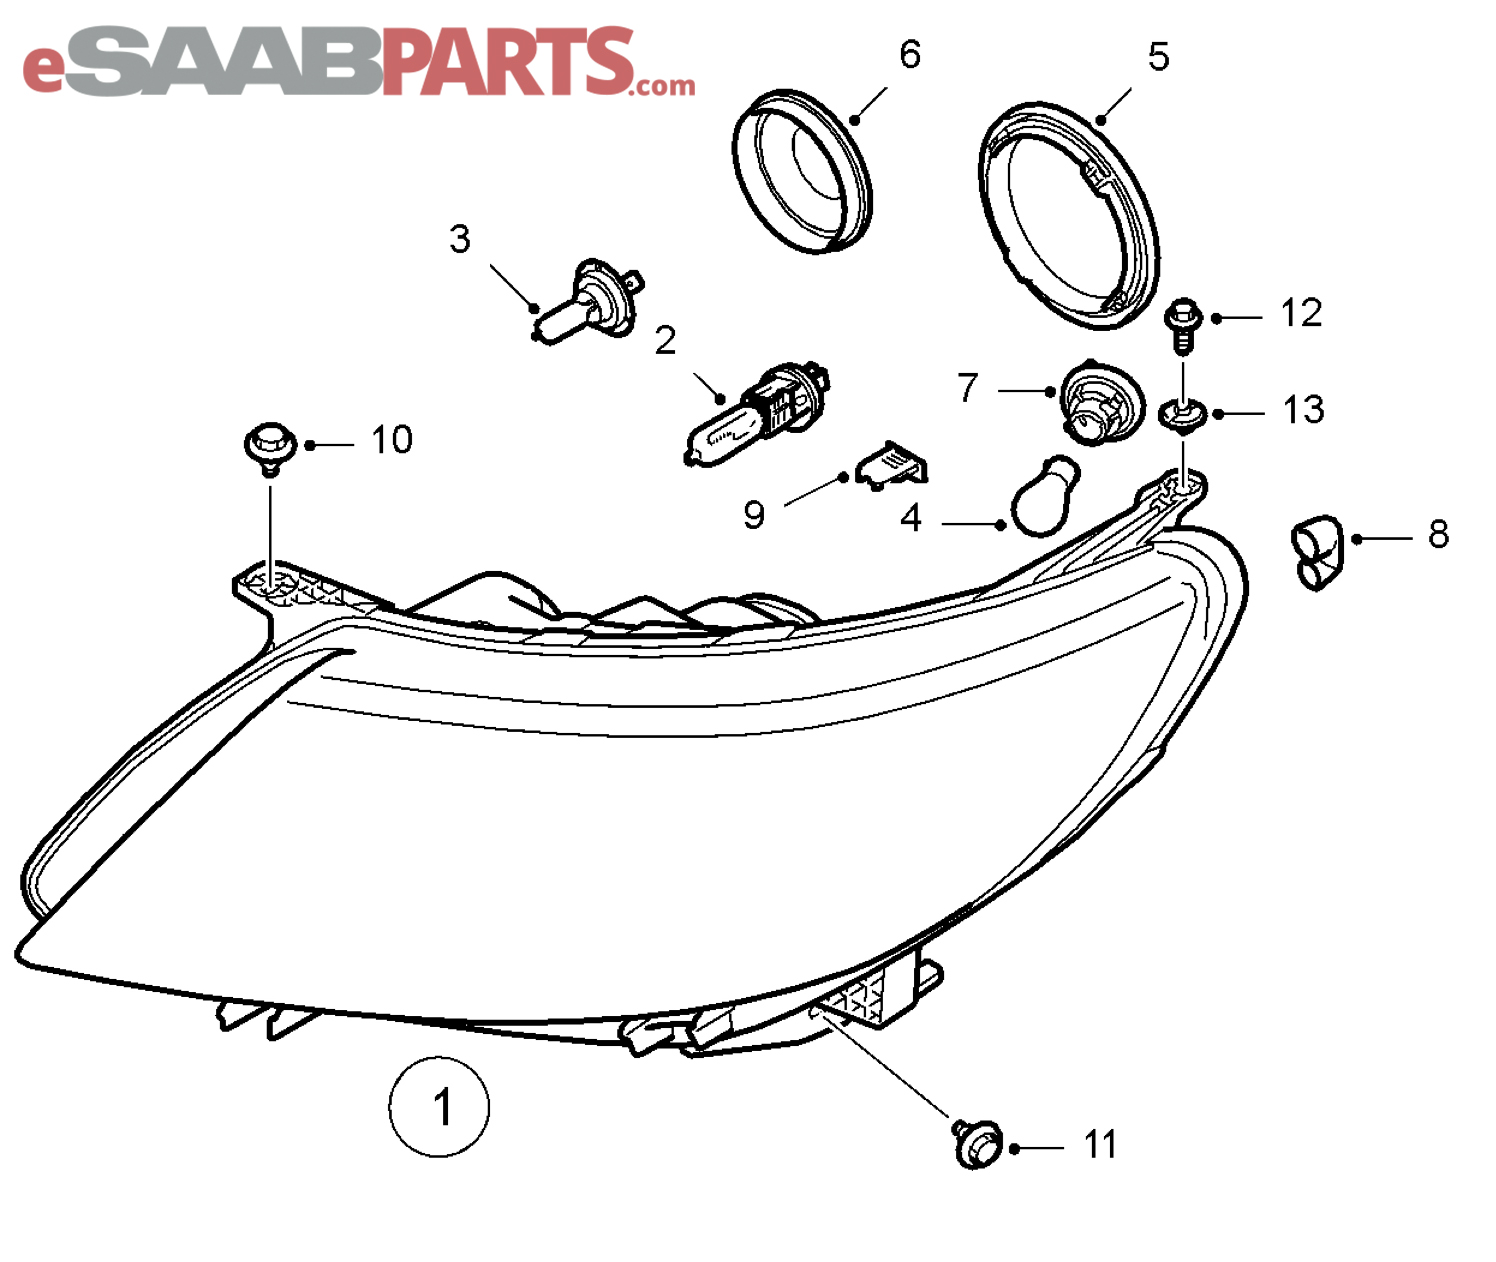 Saab 900 Ignition Wiring Diagram in addition Nissan 350z Headlights Diagram moreover 92 Prelude Wiring Diagram in addition Accel 52011 Distributor Wiring Diagram Wiring Diagrams besides 89 Chevy Van Wiring Diagram Headlights. on saab 9 3 headlights